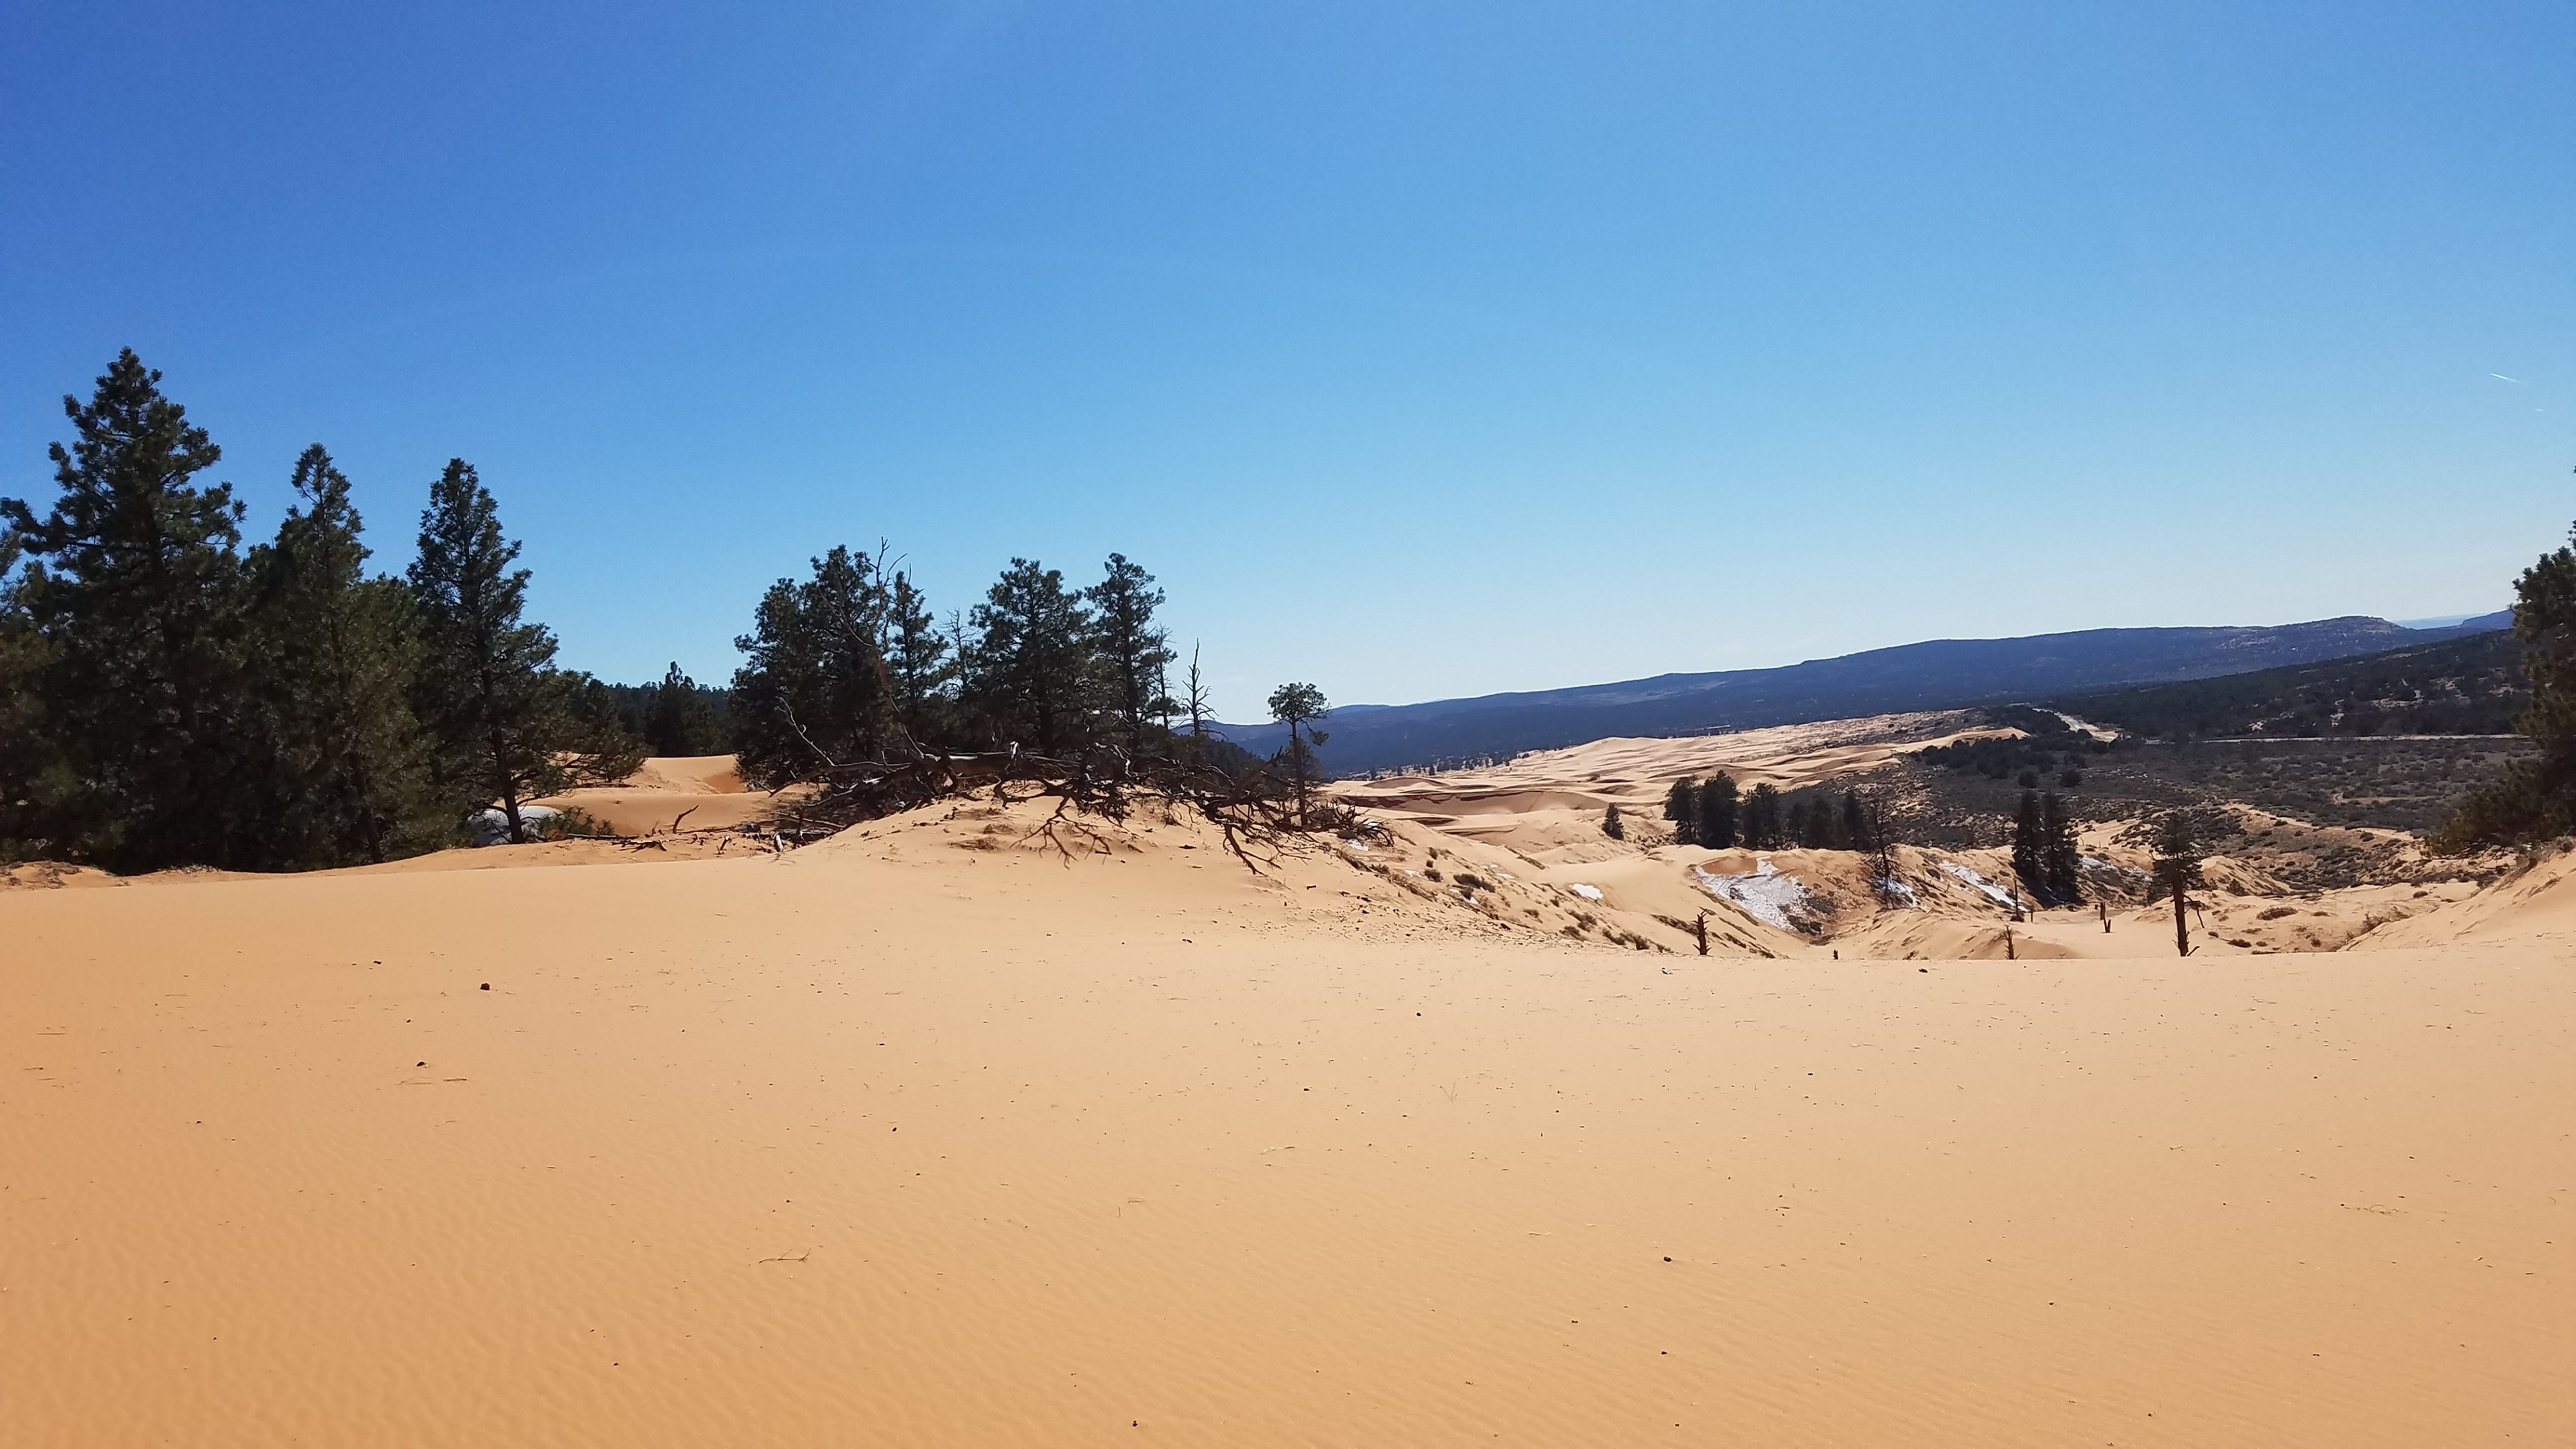 sand dunes utah 4k wallpaper background